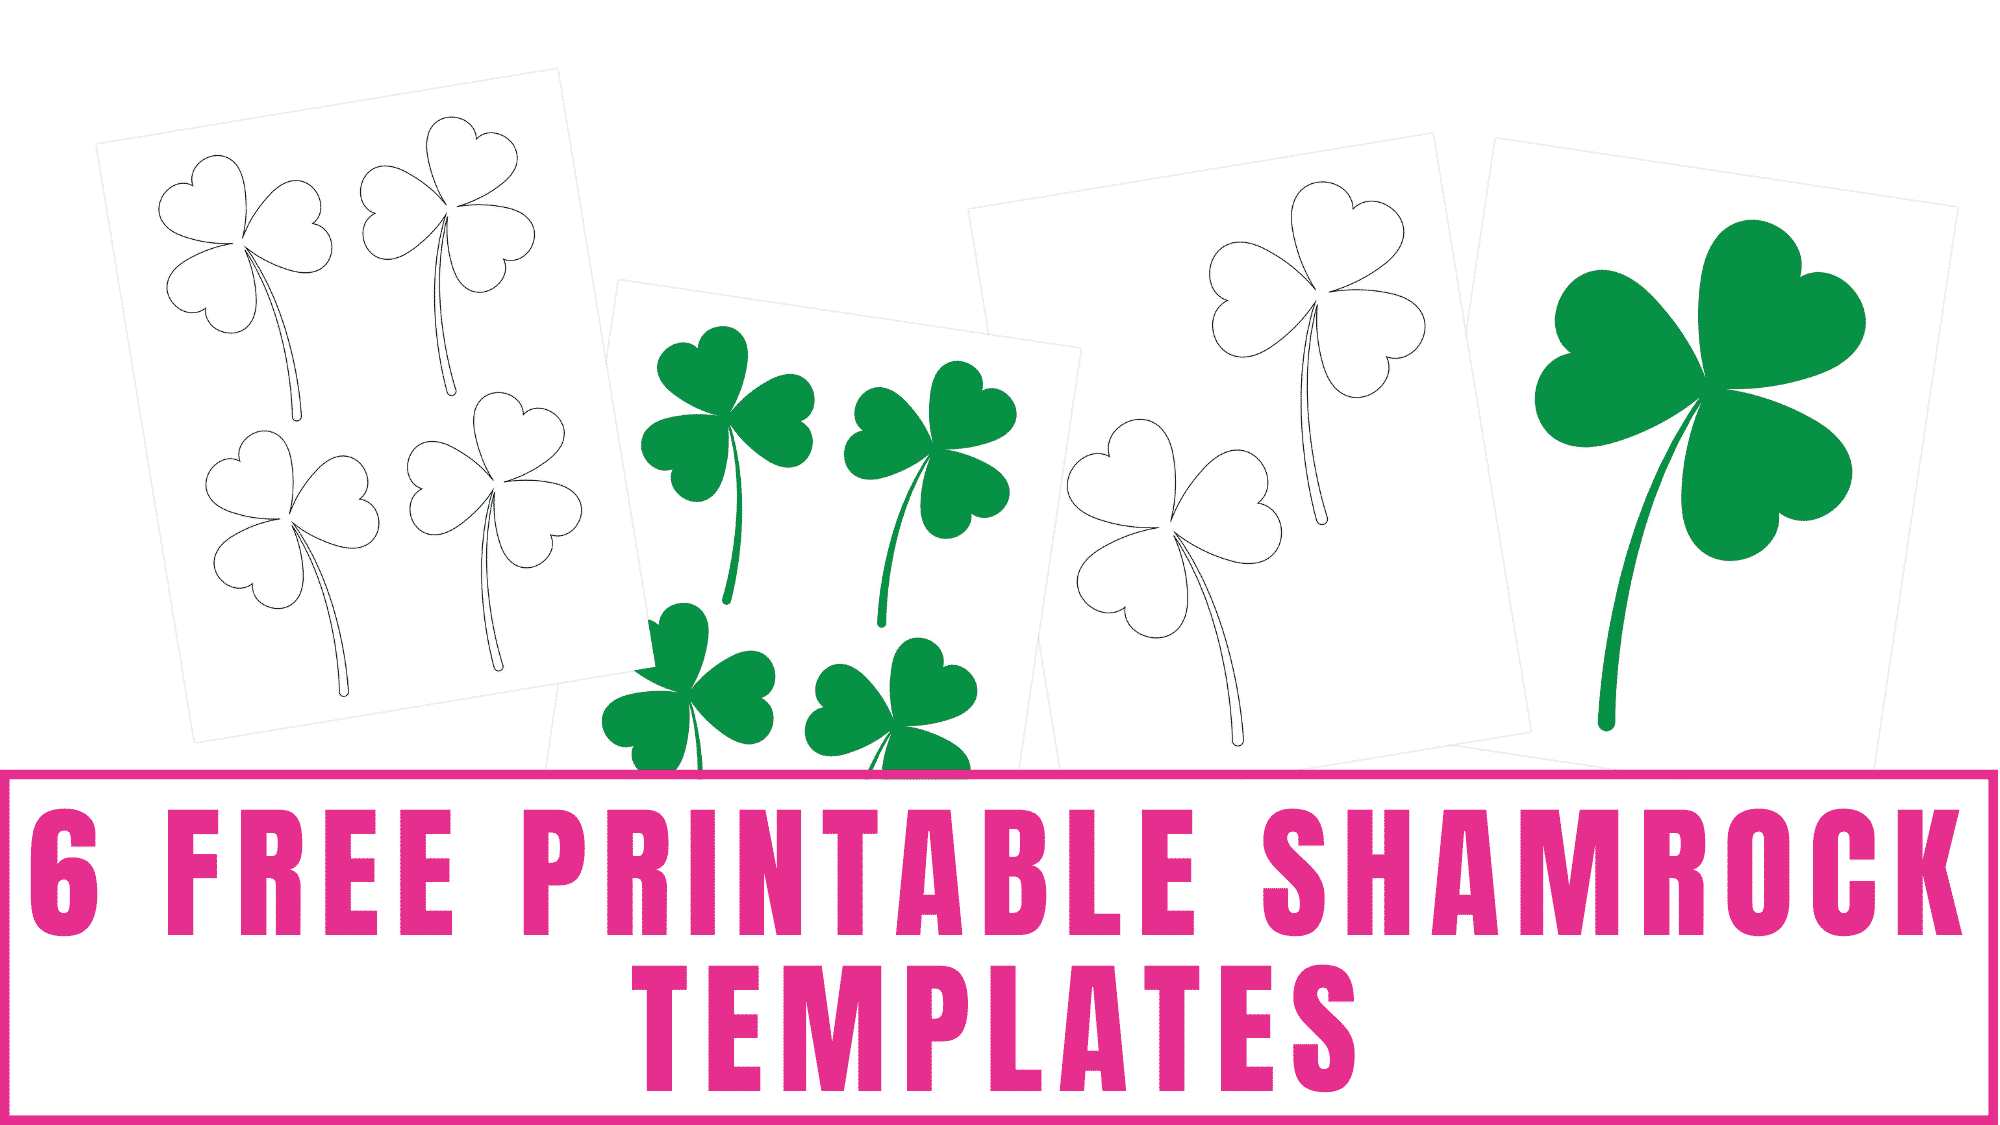 It doesn't have to be St. Patrick's Day to use these free printable shamrock templates. You can use these templates year round for crafts, drawing, and more!